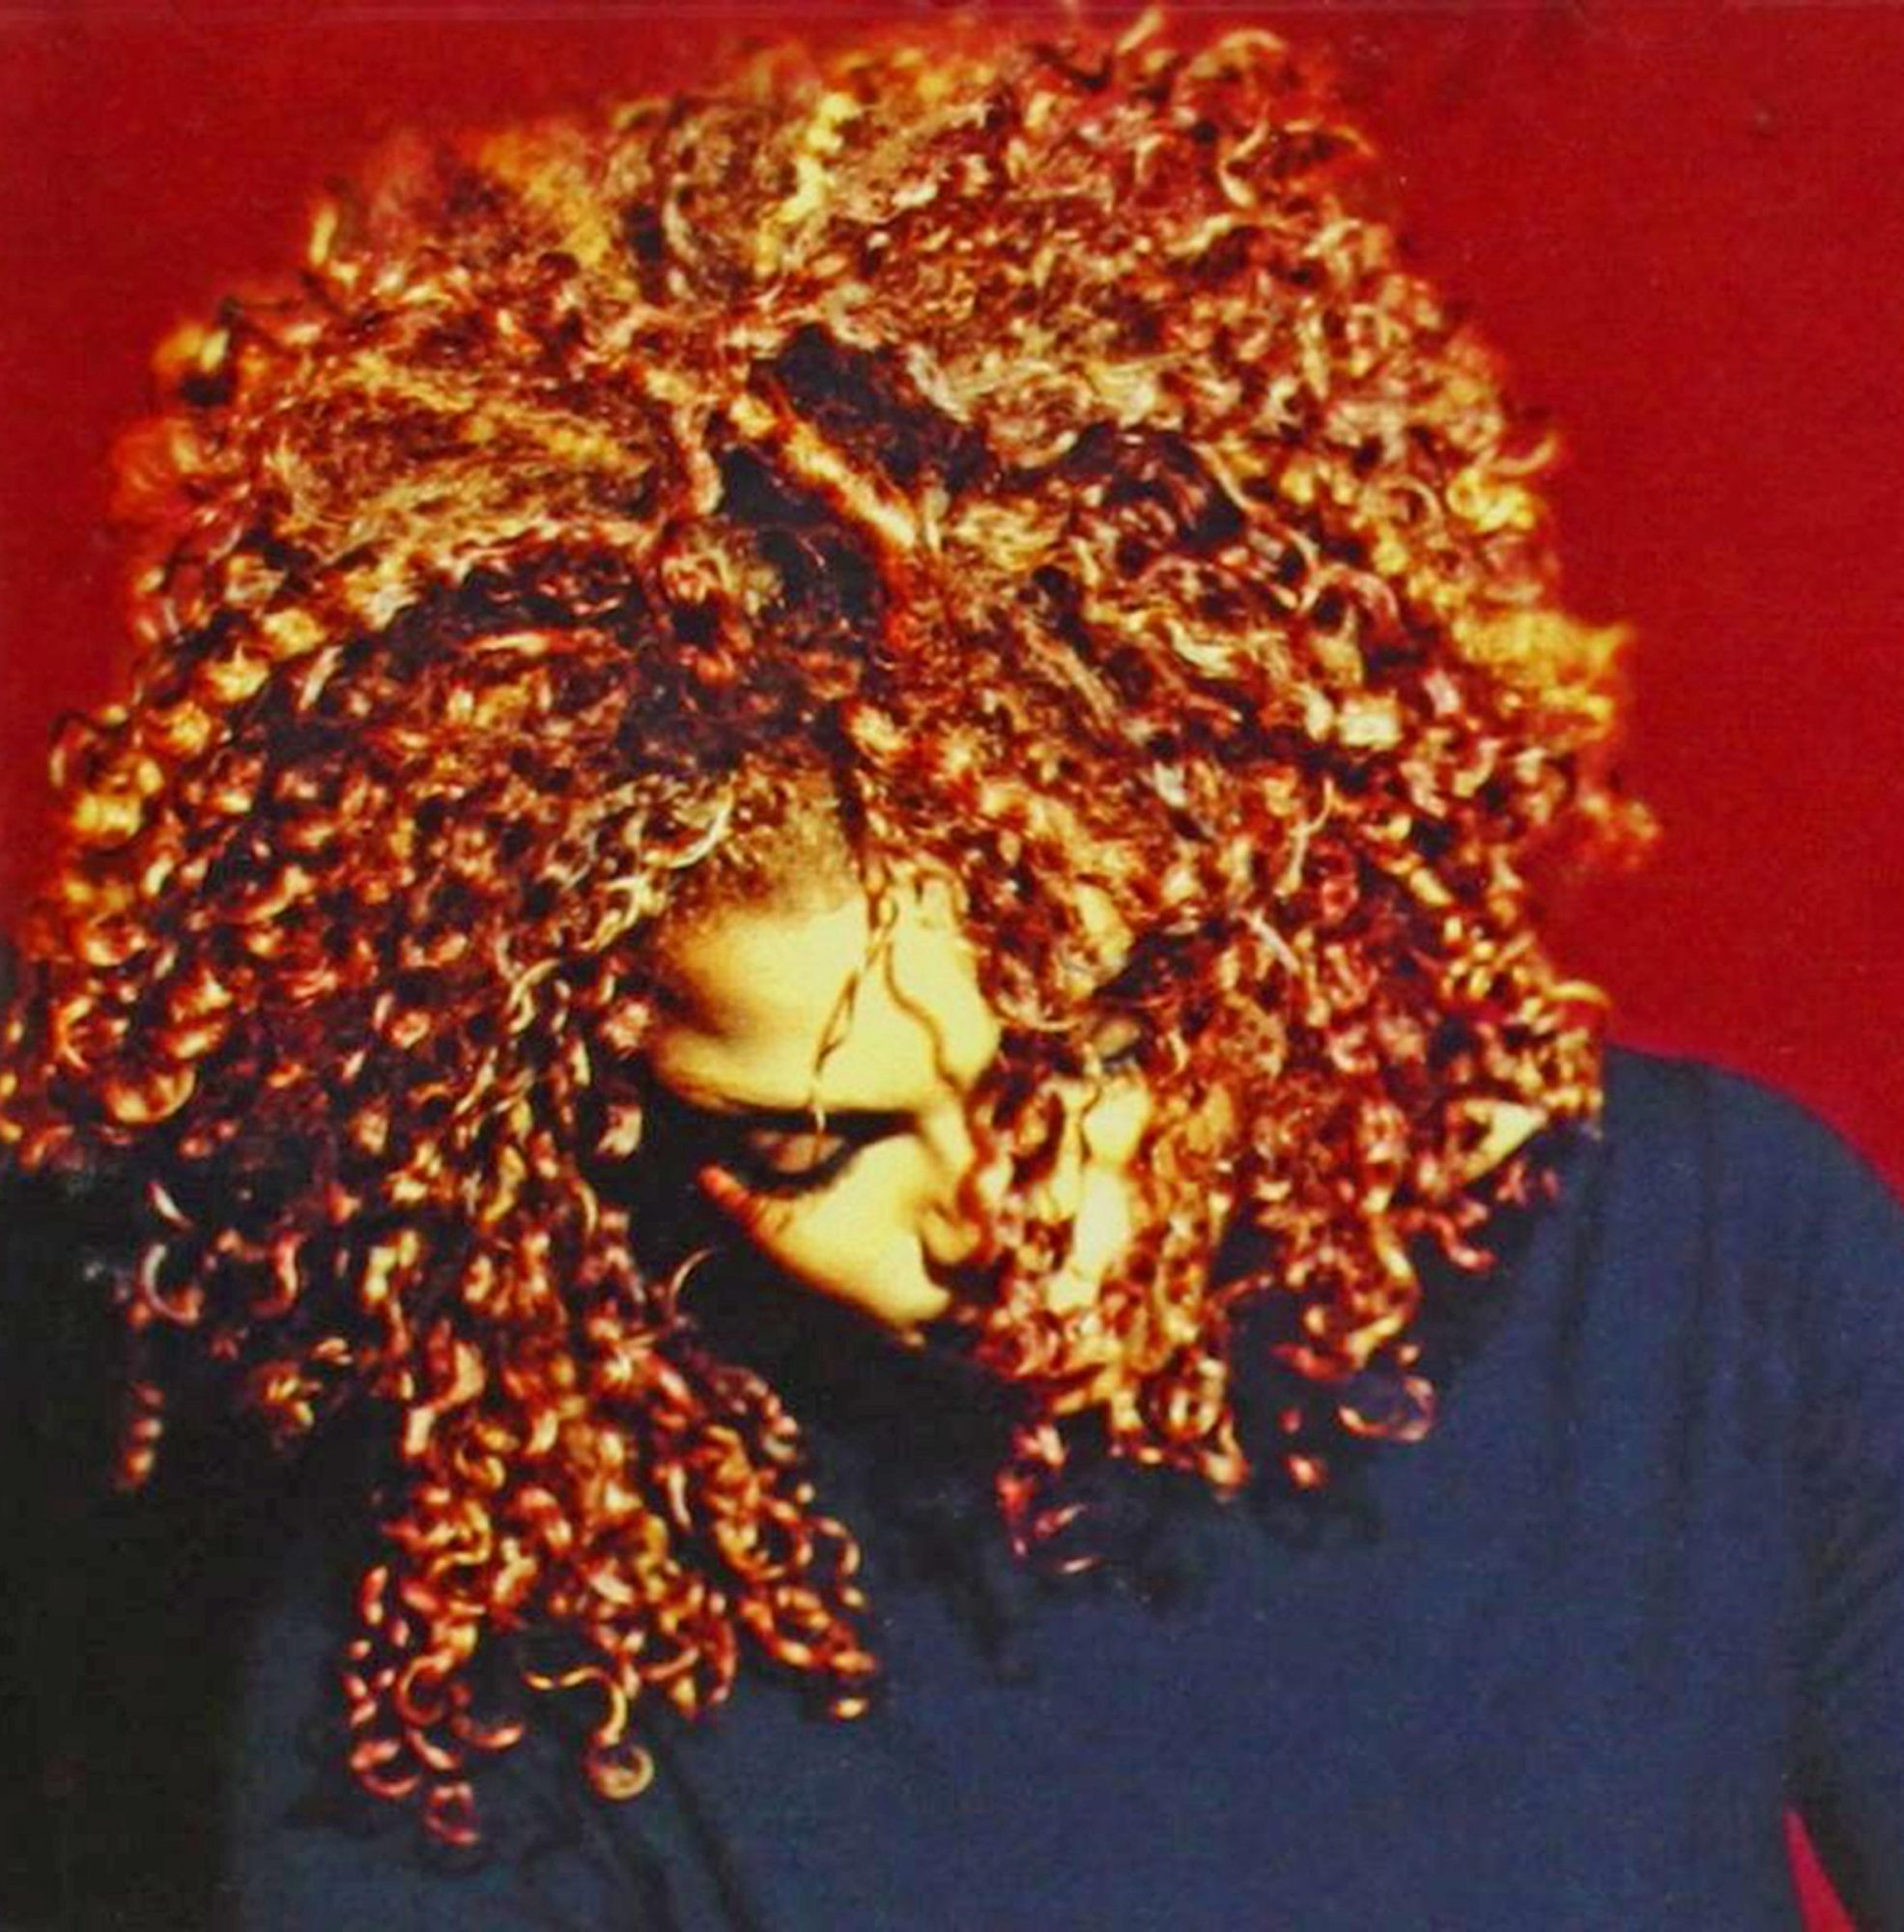 The Velvet RopeStudio album by Janet Jackson CR: Virgin Records